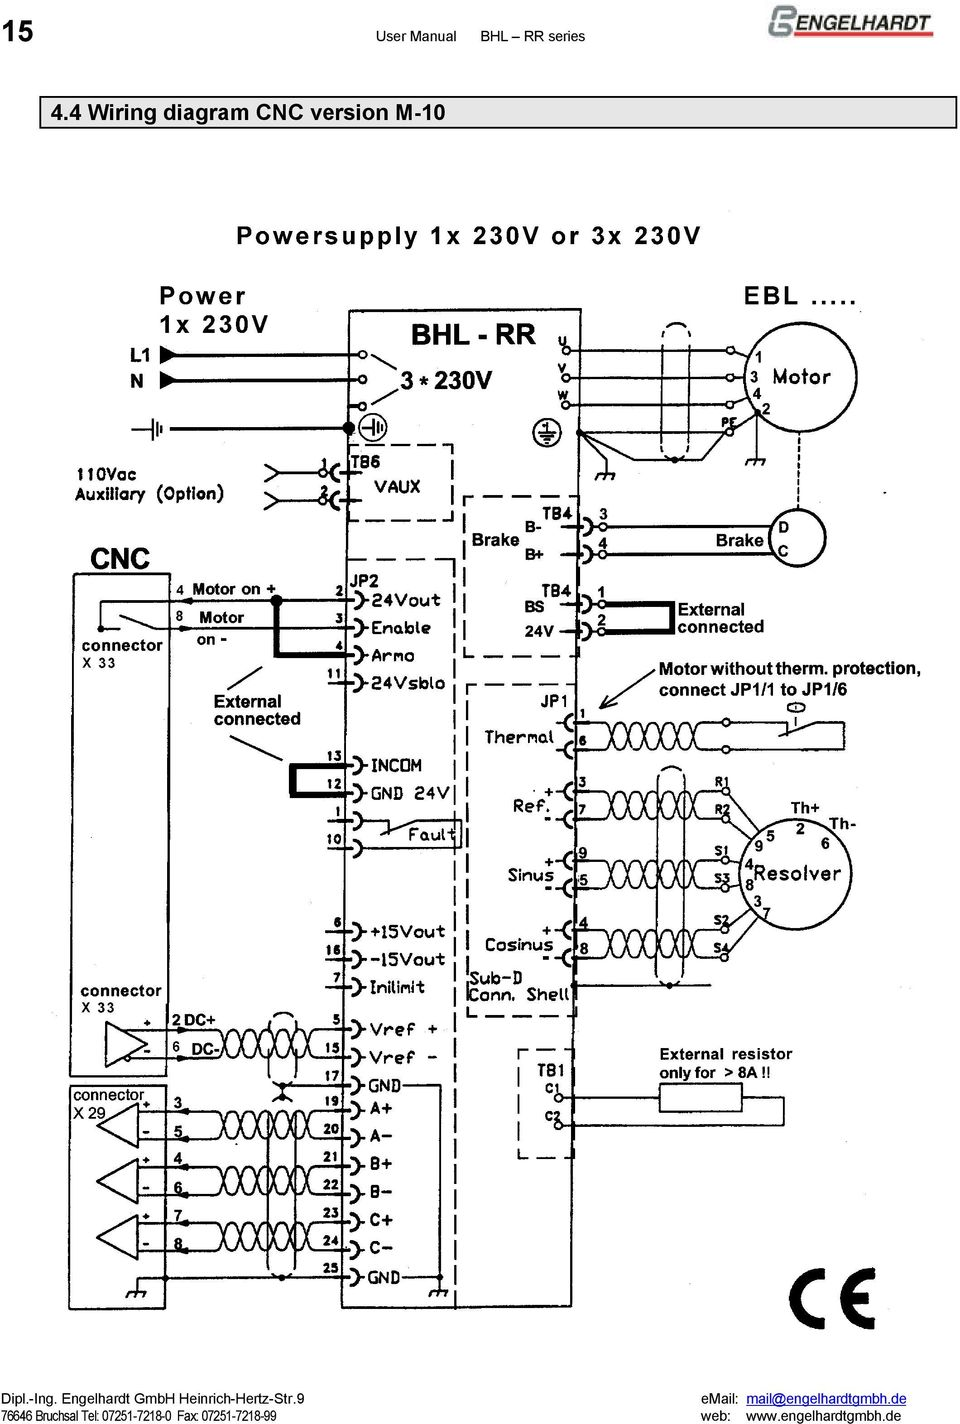 Servoamplifiers For Brushless Motors Series Bhl Rr Pdf Abb Vfd Wiring Diagram Free Picture Schematic 16 User Manual 45 Main Supply Connections Tb3 R S T Line Connection Tri Phases 220v Pe Gnd Screw Ring Or Fork Terminal 35 Mm